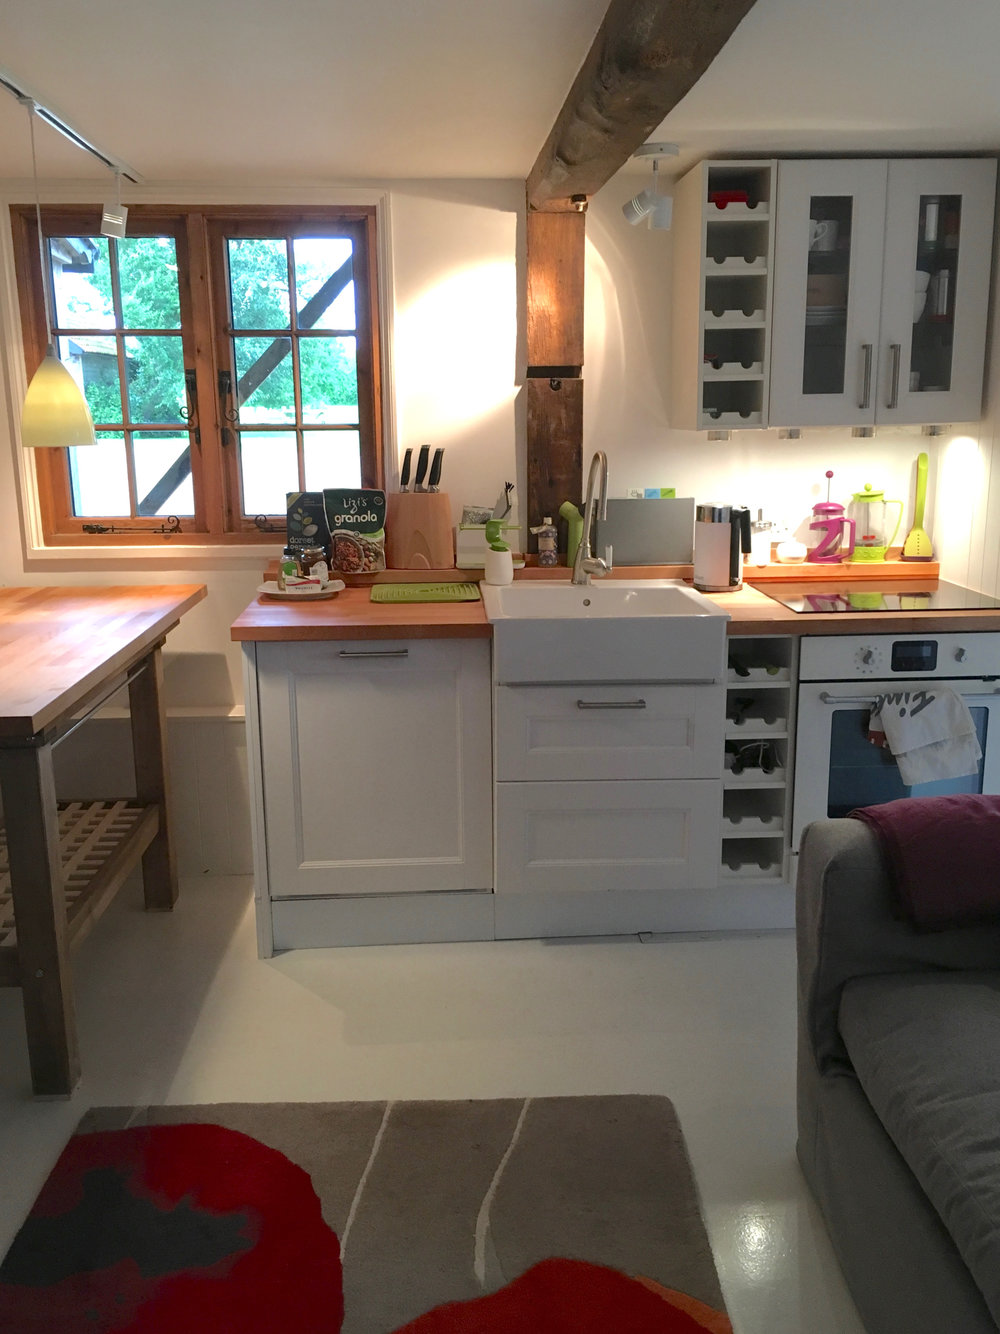 Compact and bijoux kitchen